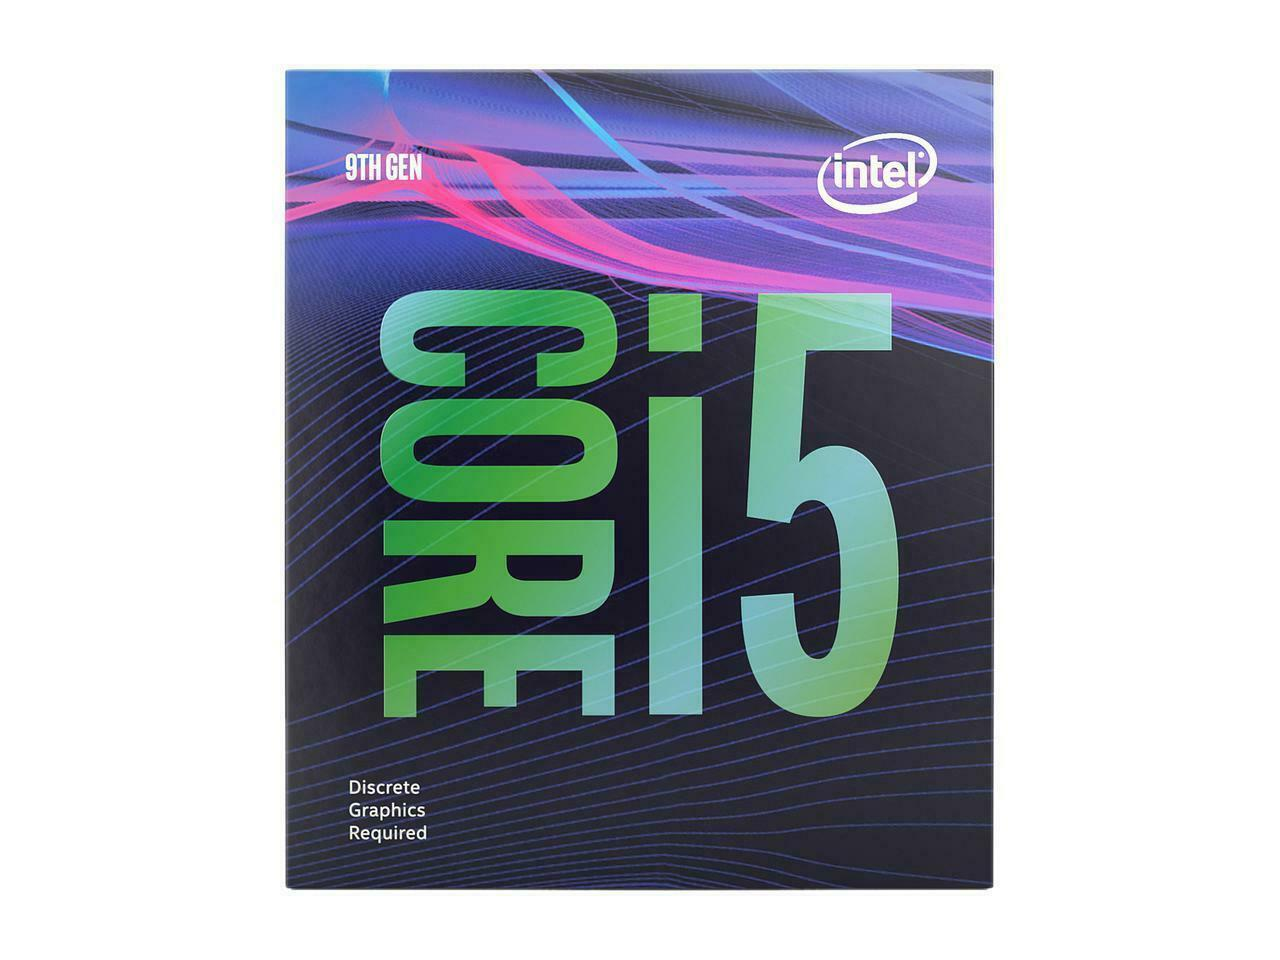 NEW Intel Core i5-9400F Coffee Lake 6-Core 2.9 GHz (4.10GHz Turbo) LGA 1151 CPU